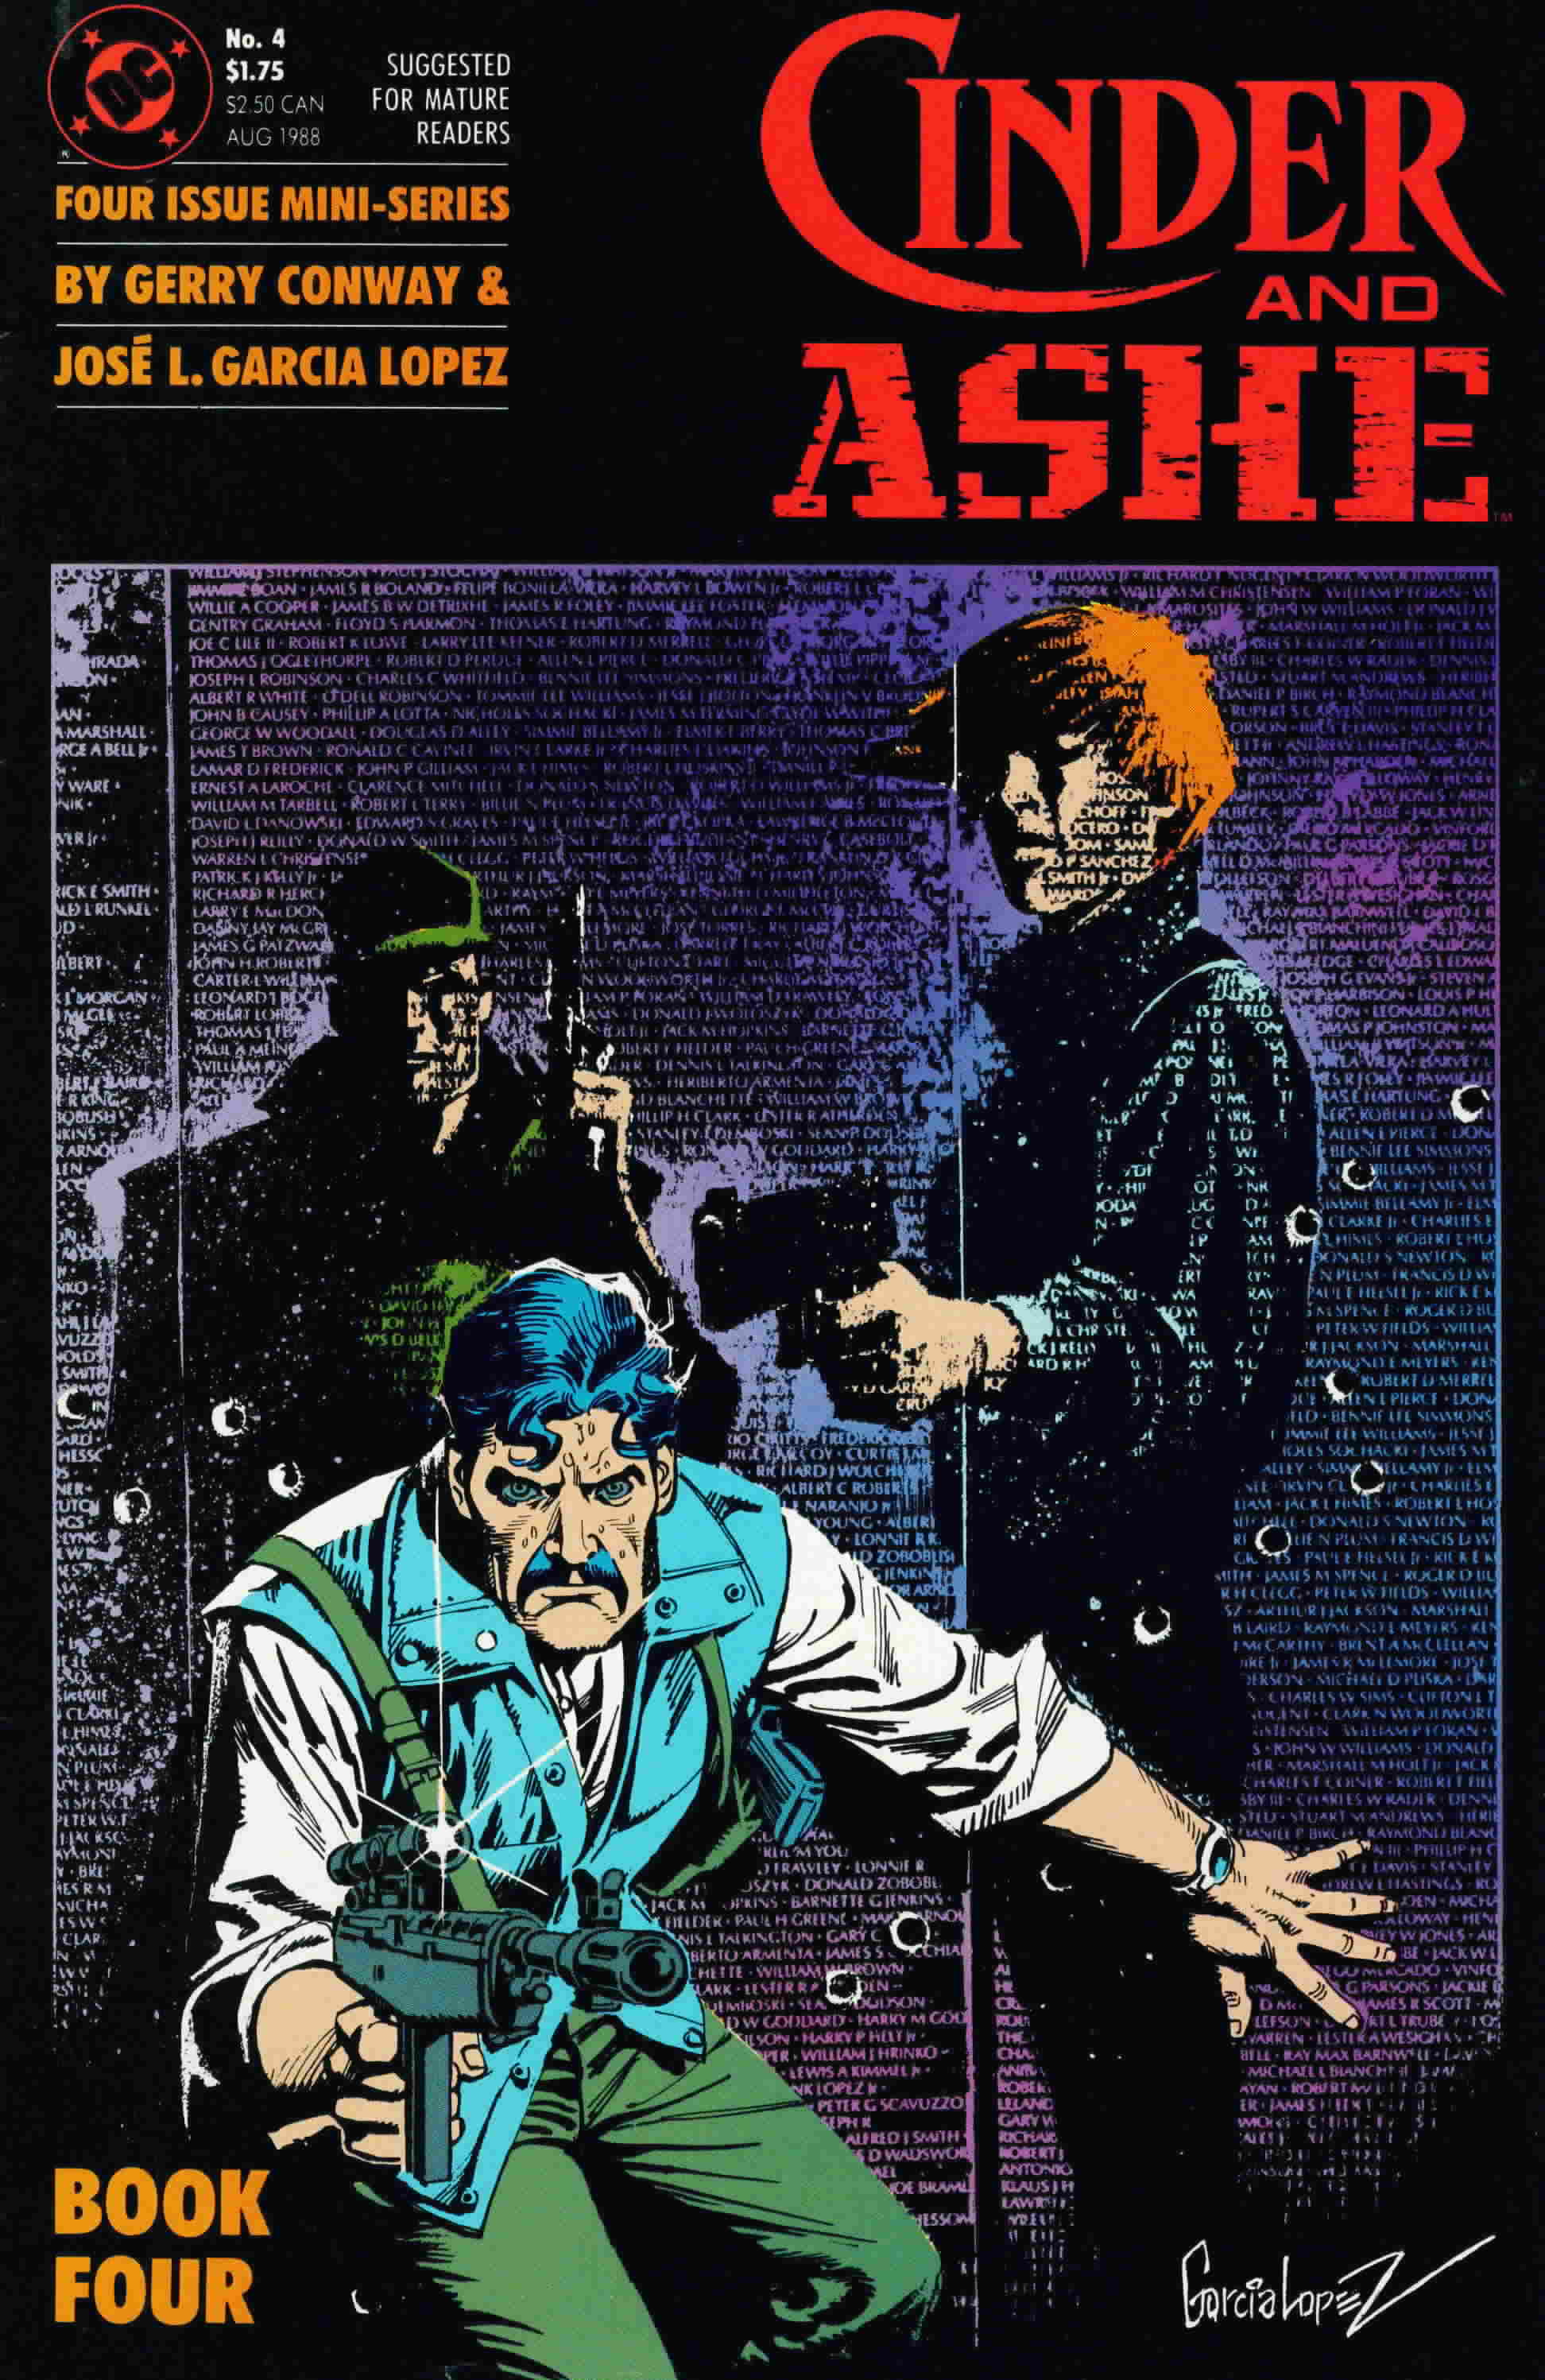 Read online Cinder and Ashe comic -  Issue #4 - 1